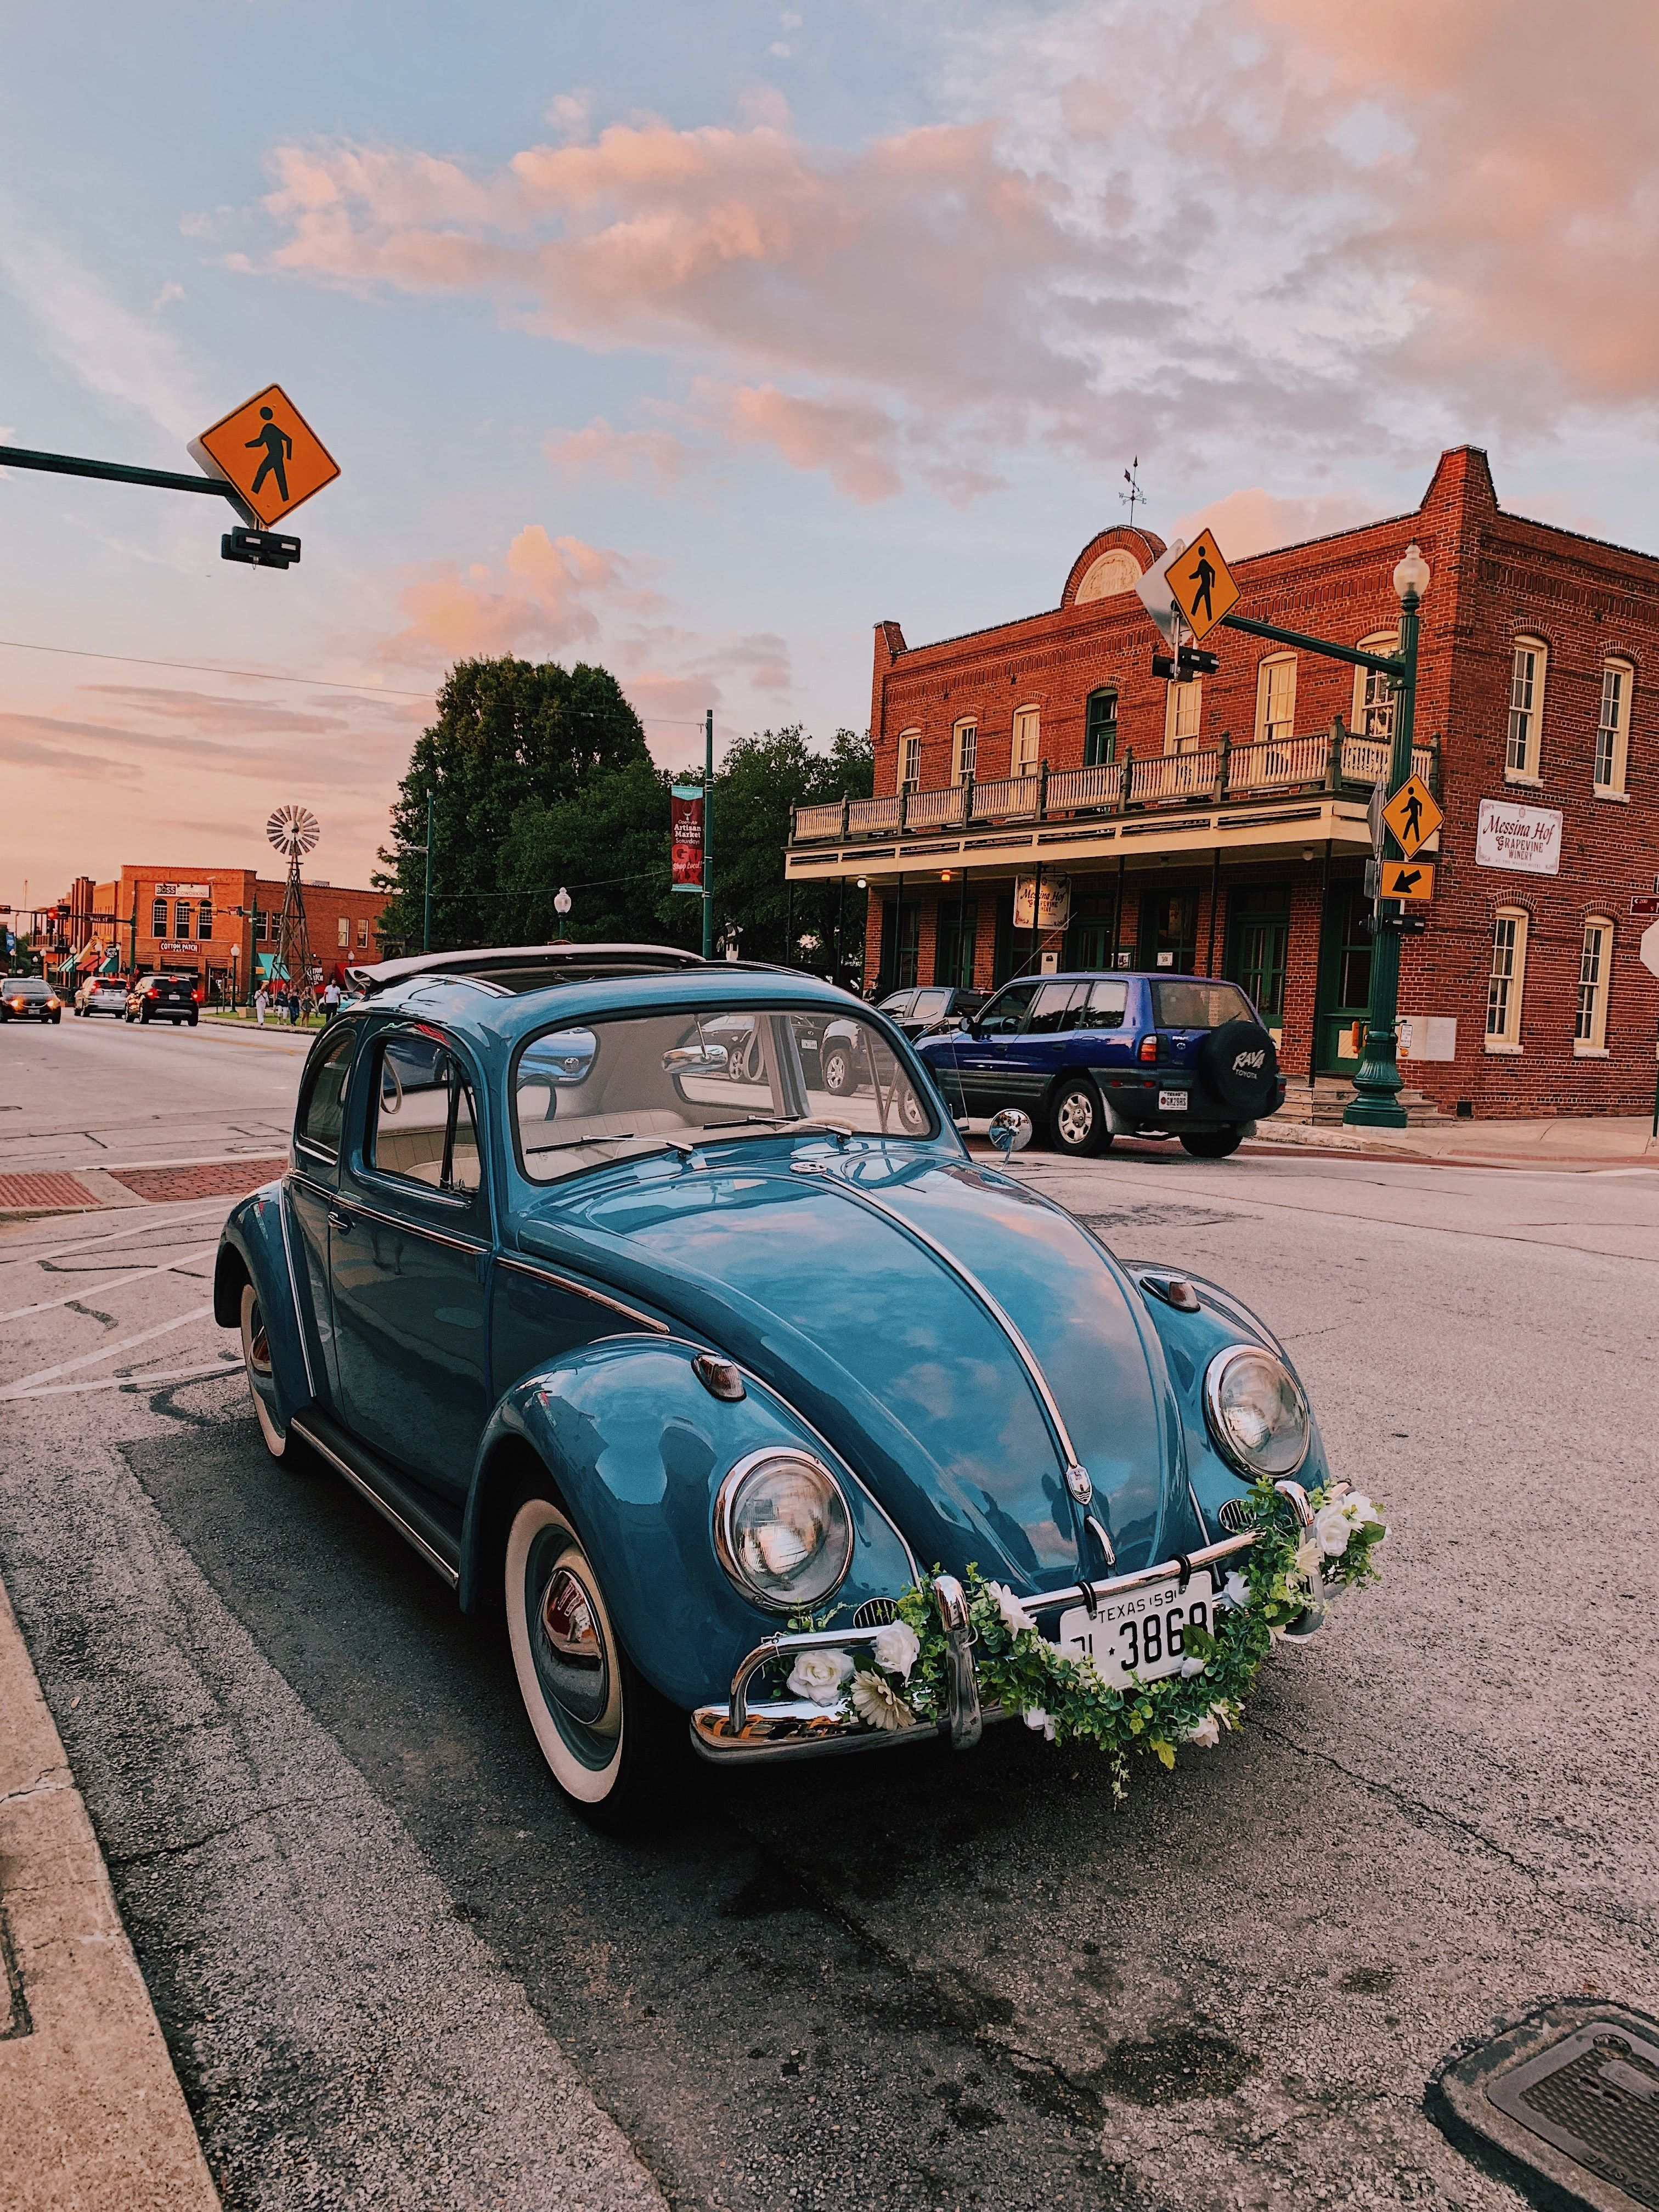 Blue Vintage Old Volkswagen Beetle In Small Town Square With